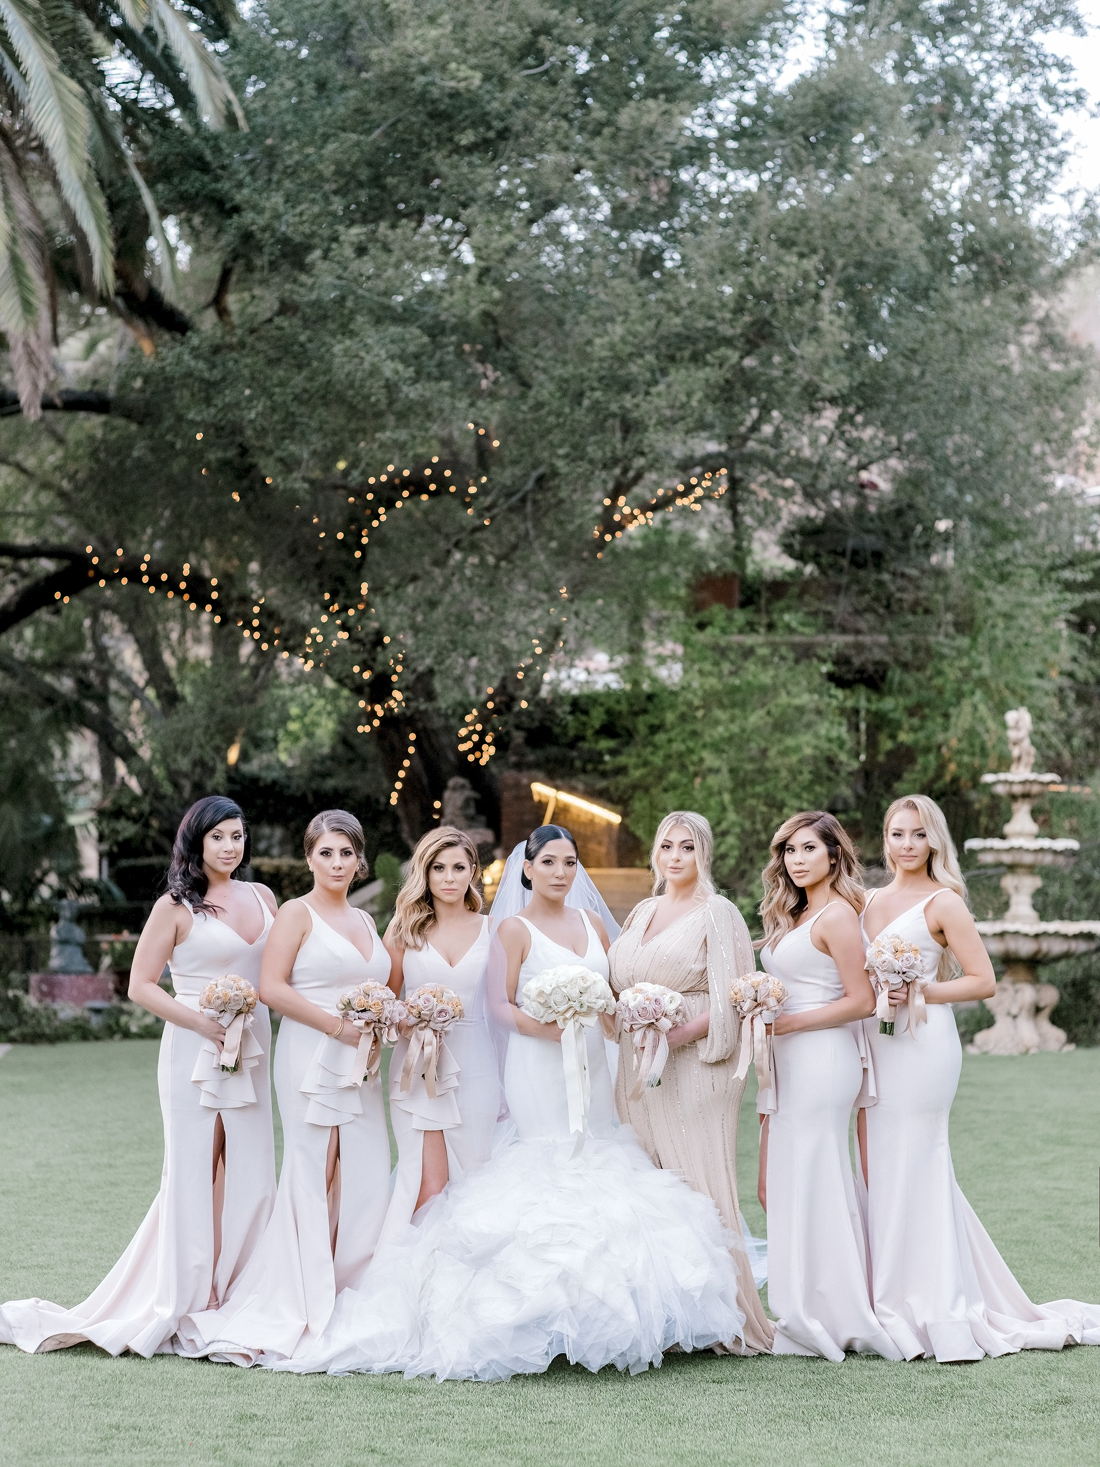 pretty bridesmaids carrying flowers by eddie zaratsian lifestyle and design